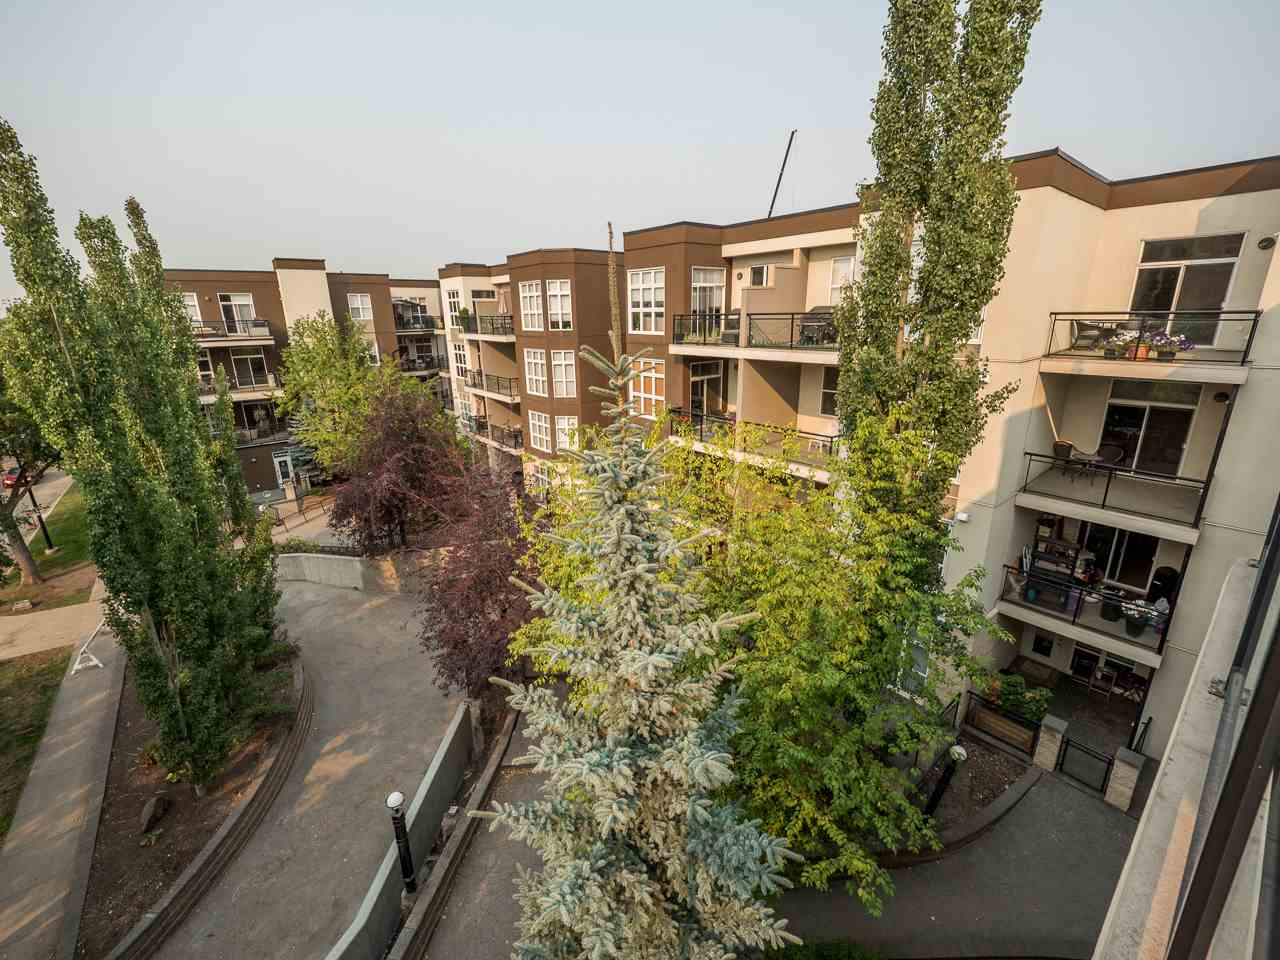 Main Photo: 441 10403 122 Street in Edmonton: Zone 07 Condo for sale : MLS® # E4080137